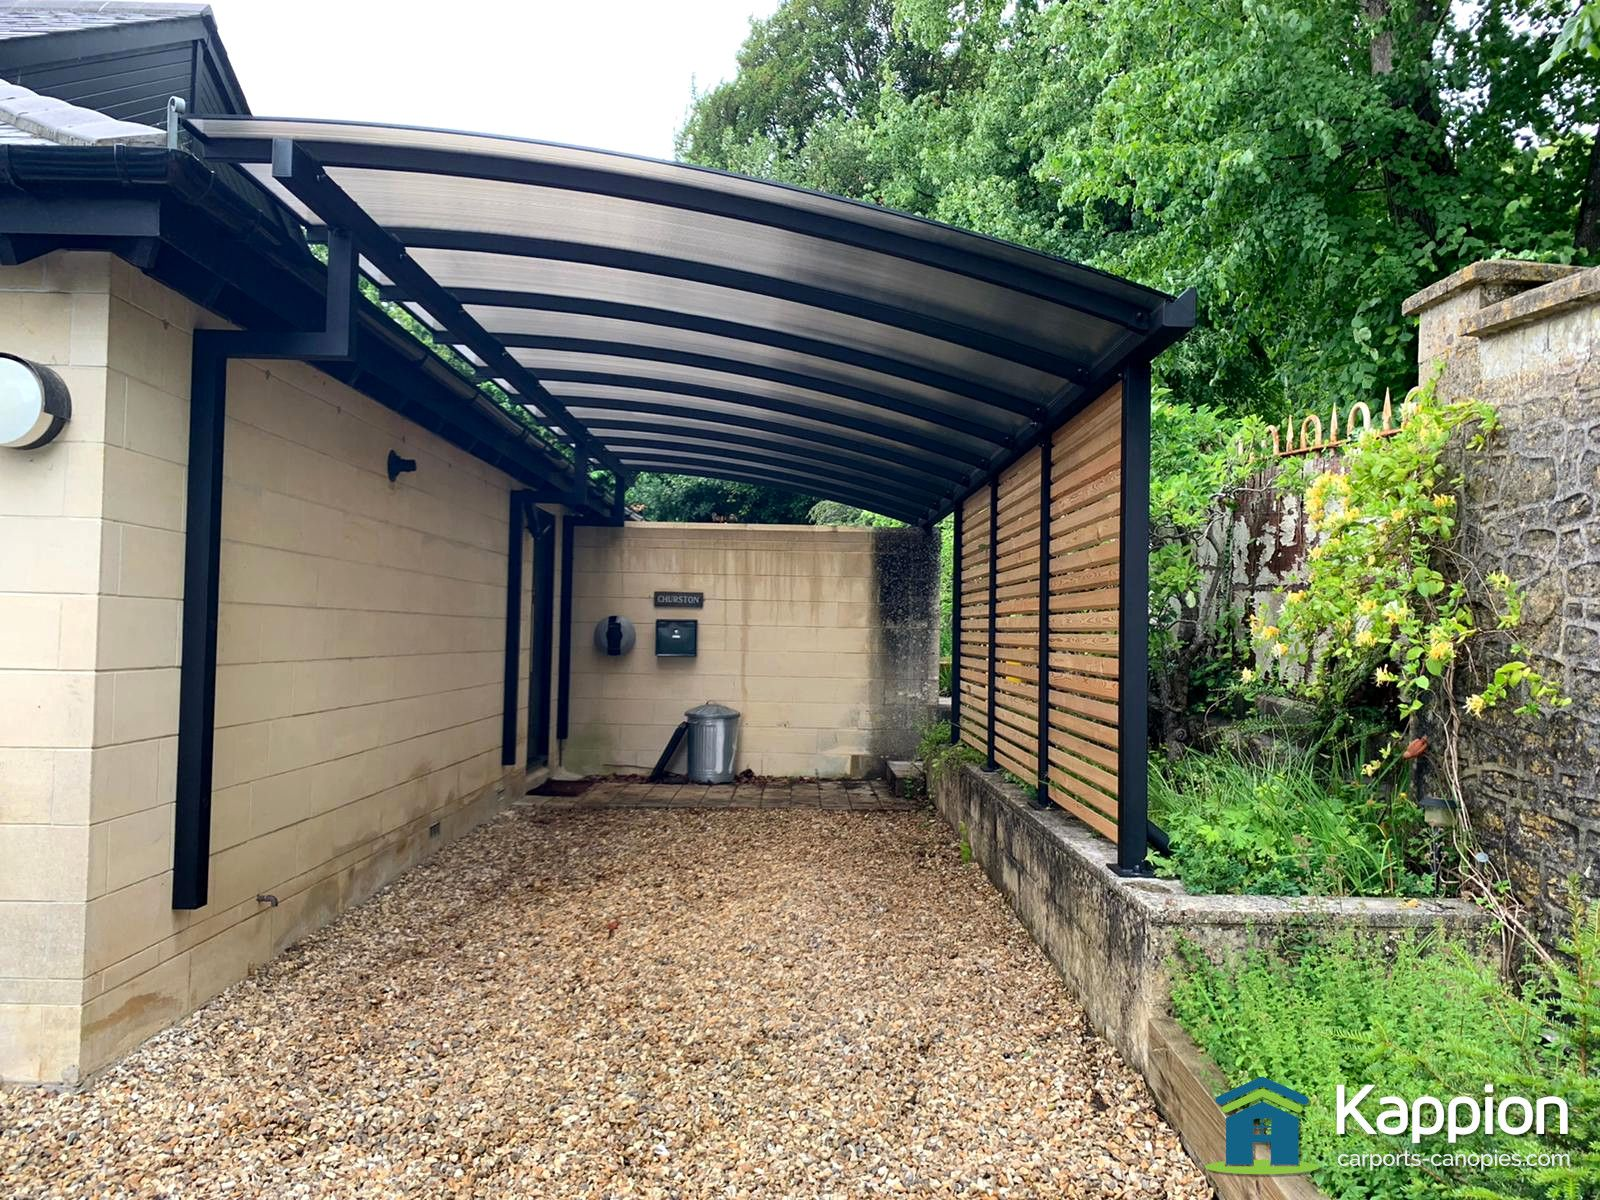 Quarter Curve Carport installed in Bath by Kappion